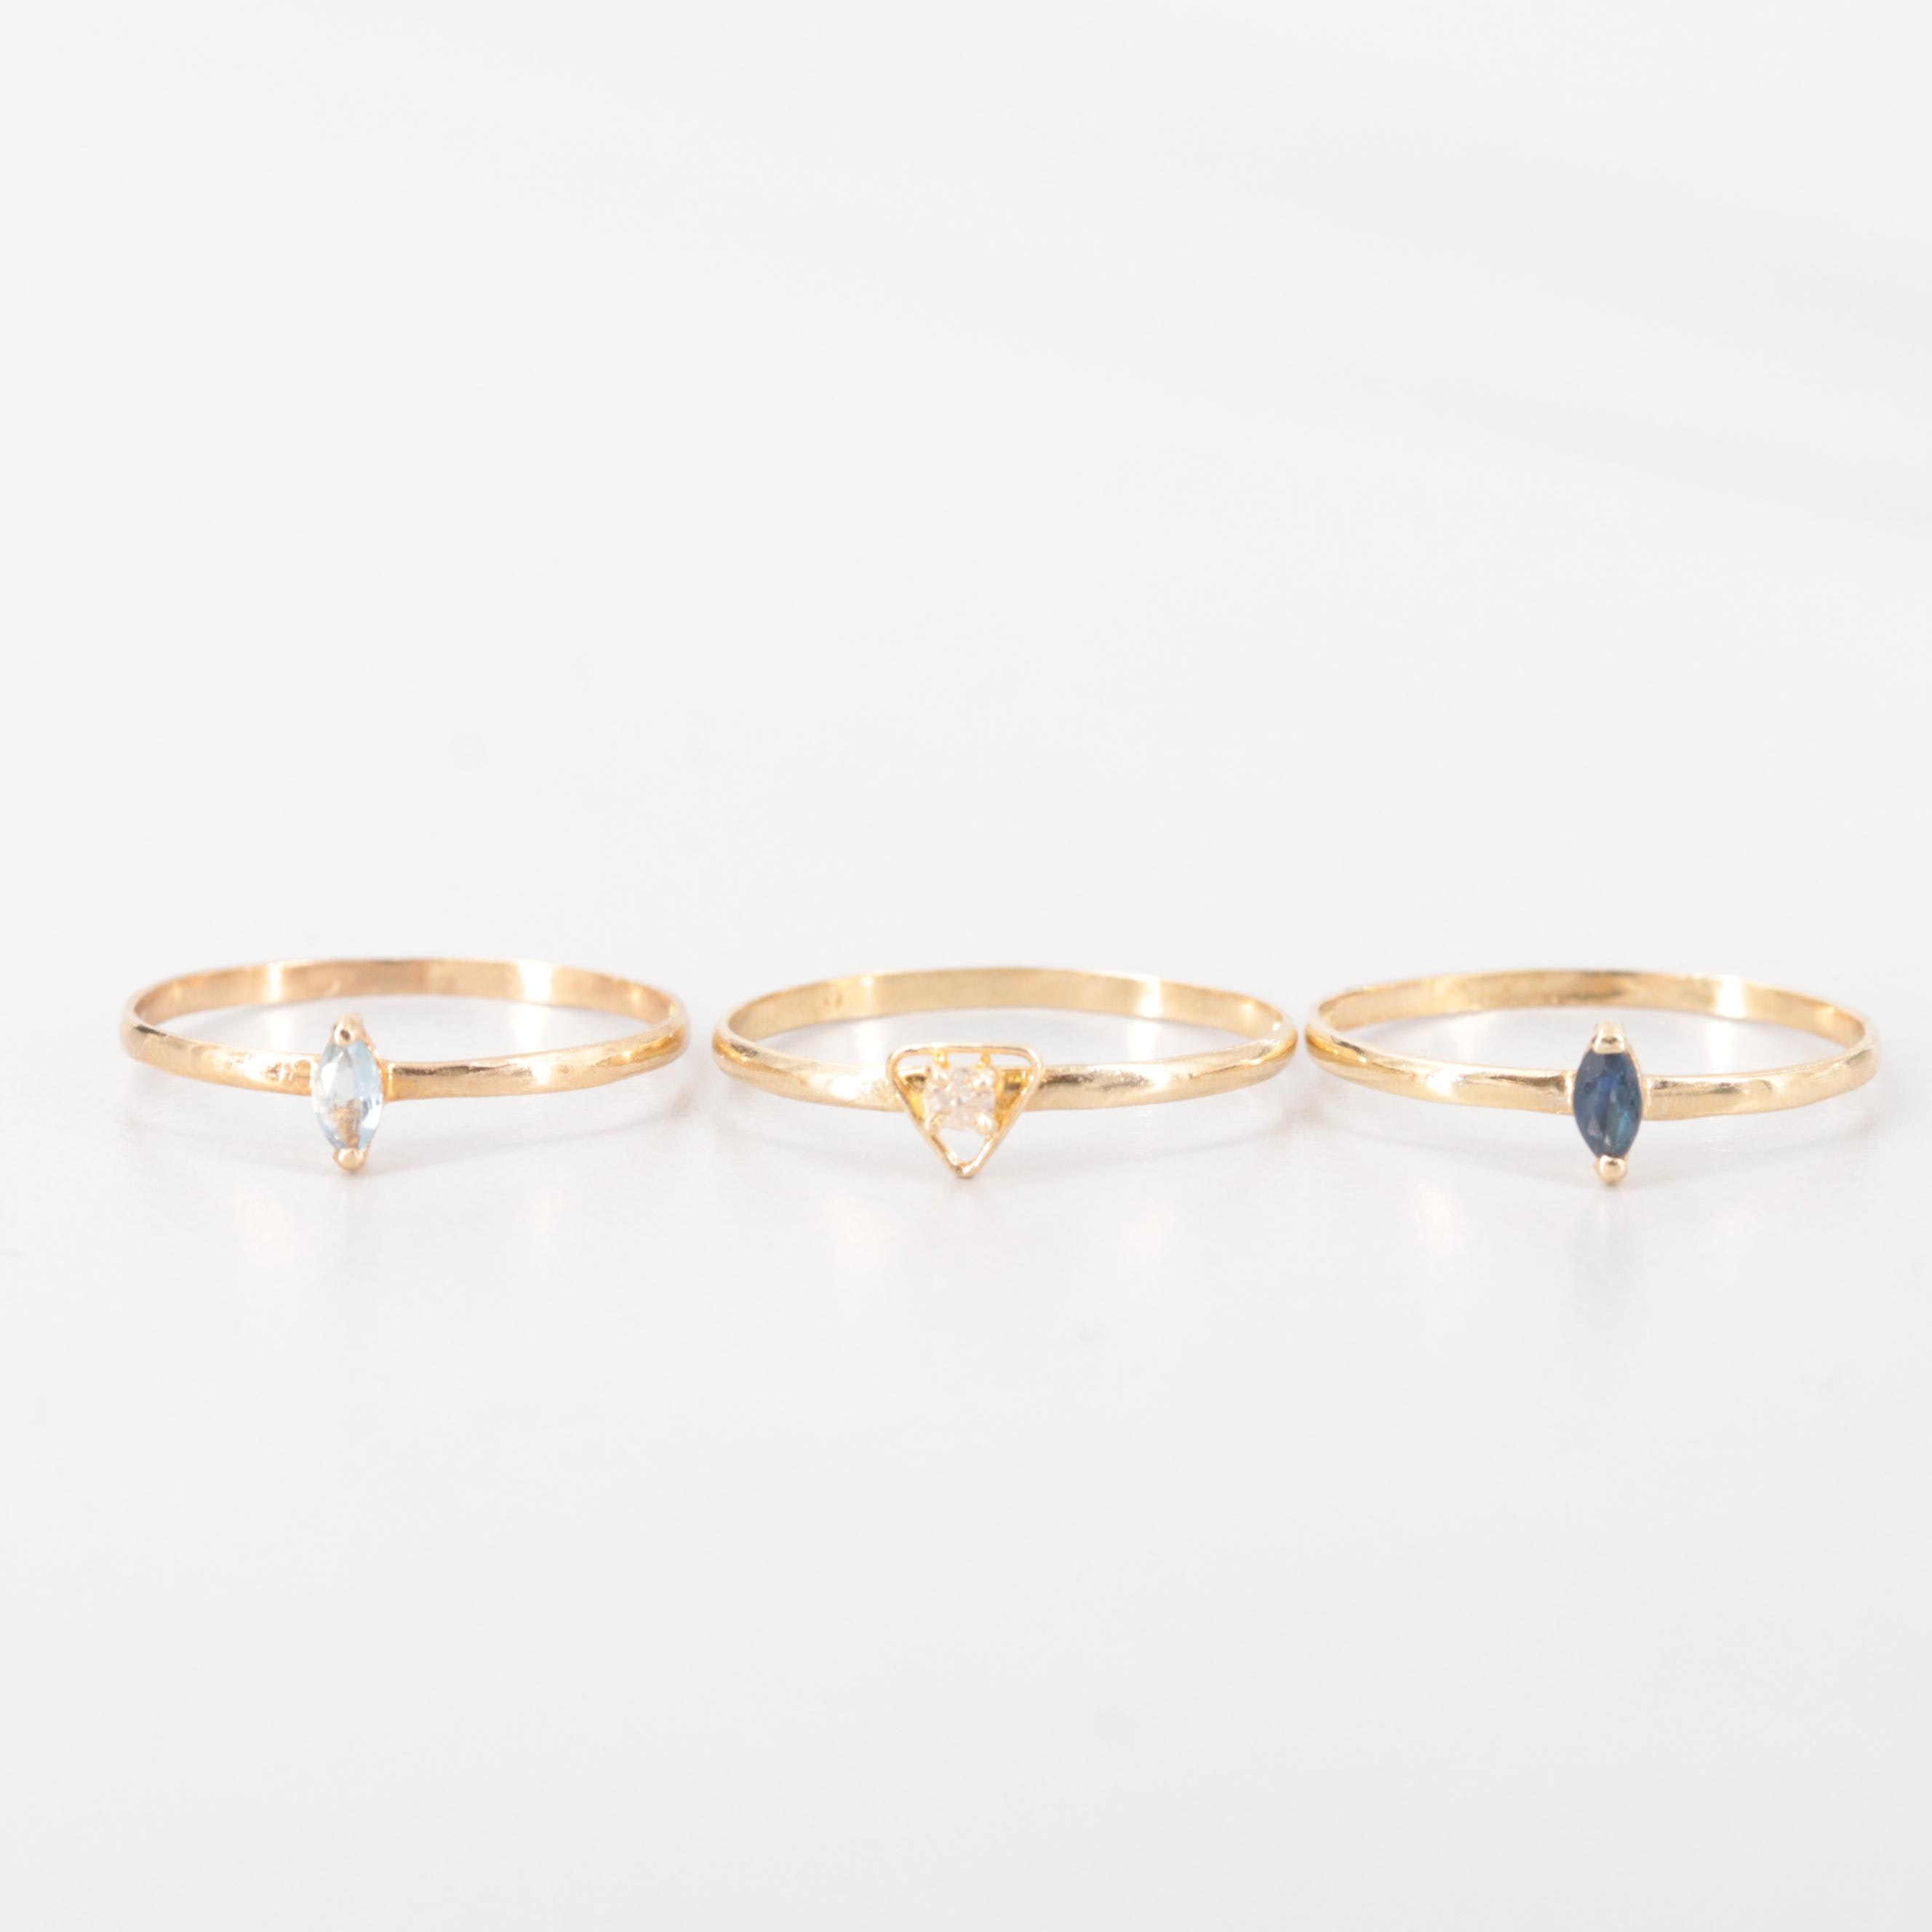 14K Yellow Gold Stackable Diamond, Sapphire and Topaz Stacking Rings